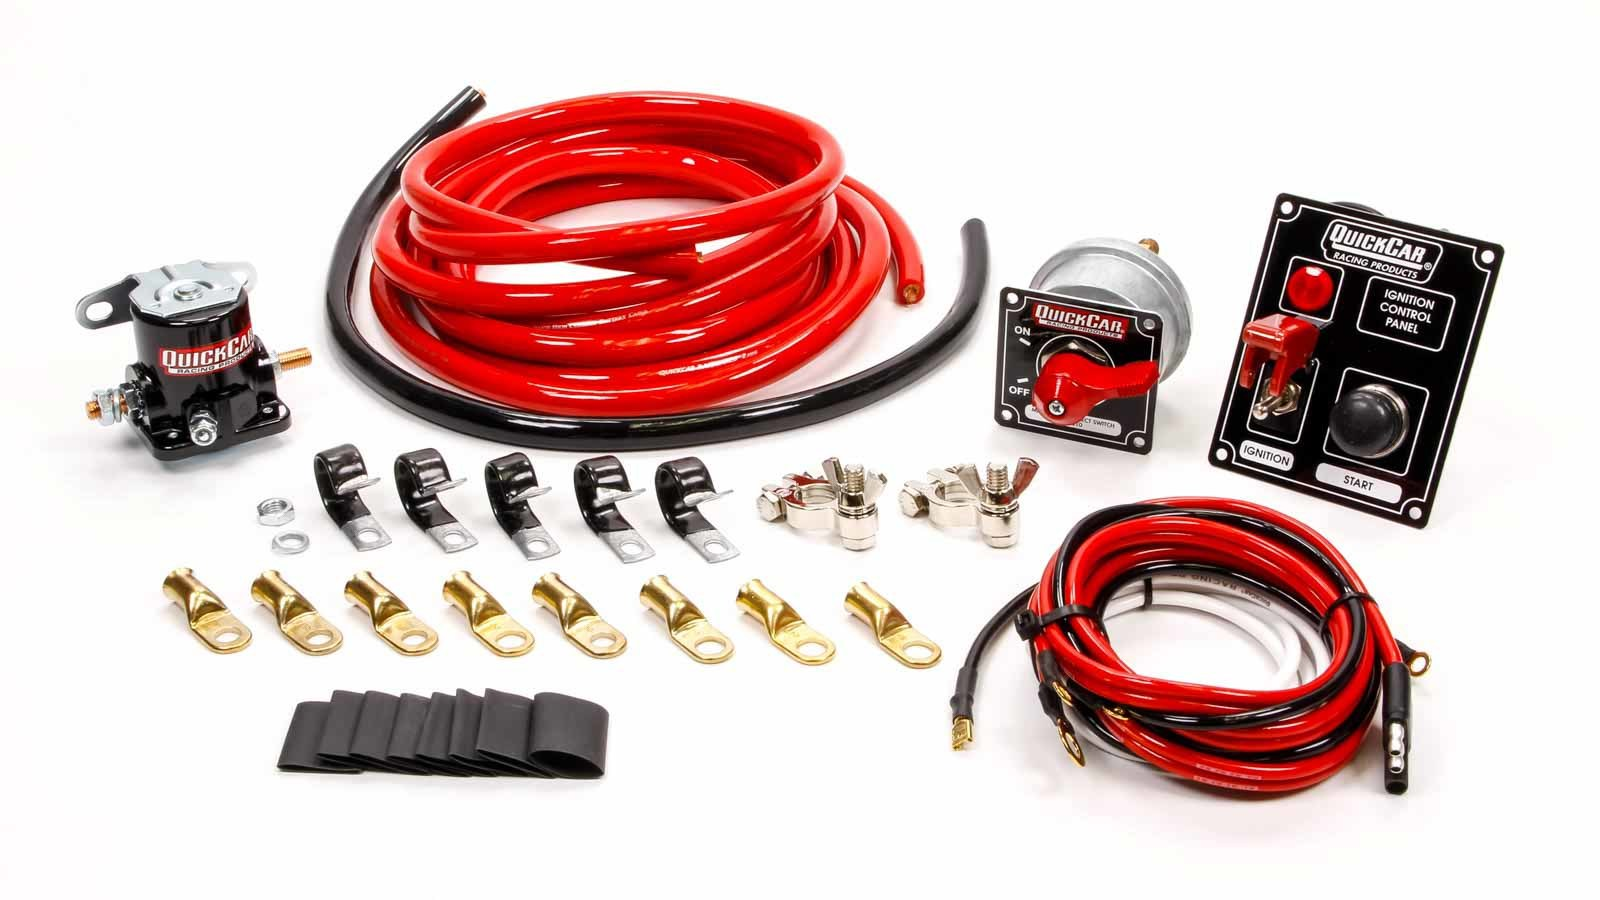 QuickCar 50-830 Wiring Kit, Ignition / Battery, Heavy Duty, Battery Cable / Battery Disconnect / Solenoid / Switch Panel / Terminals, 2 Gauge, Kit